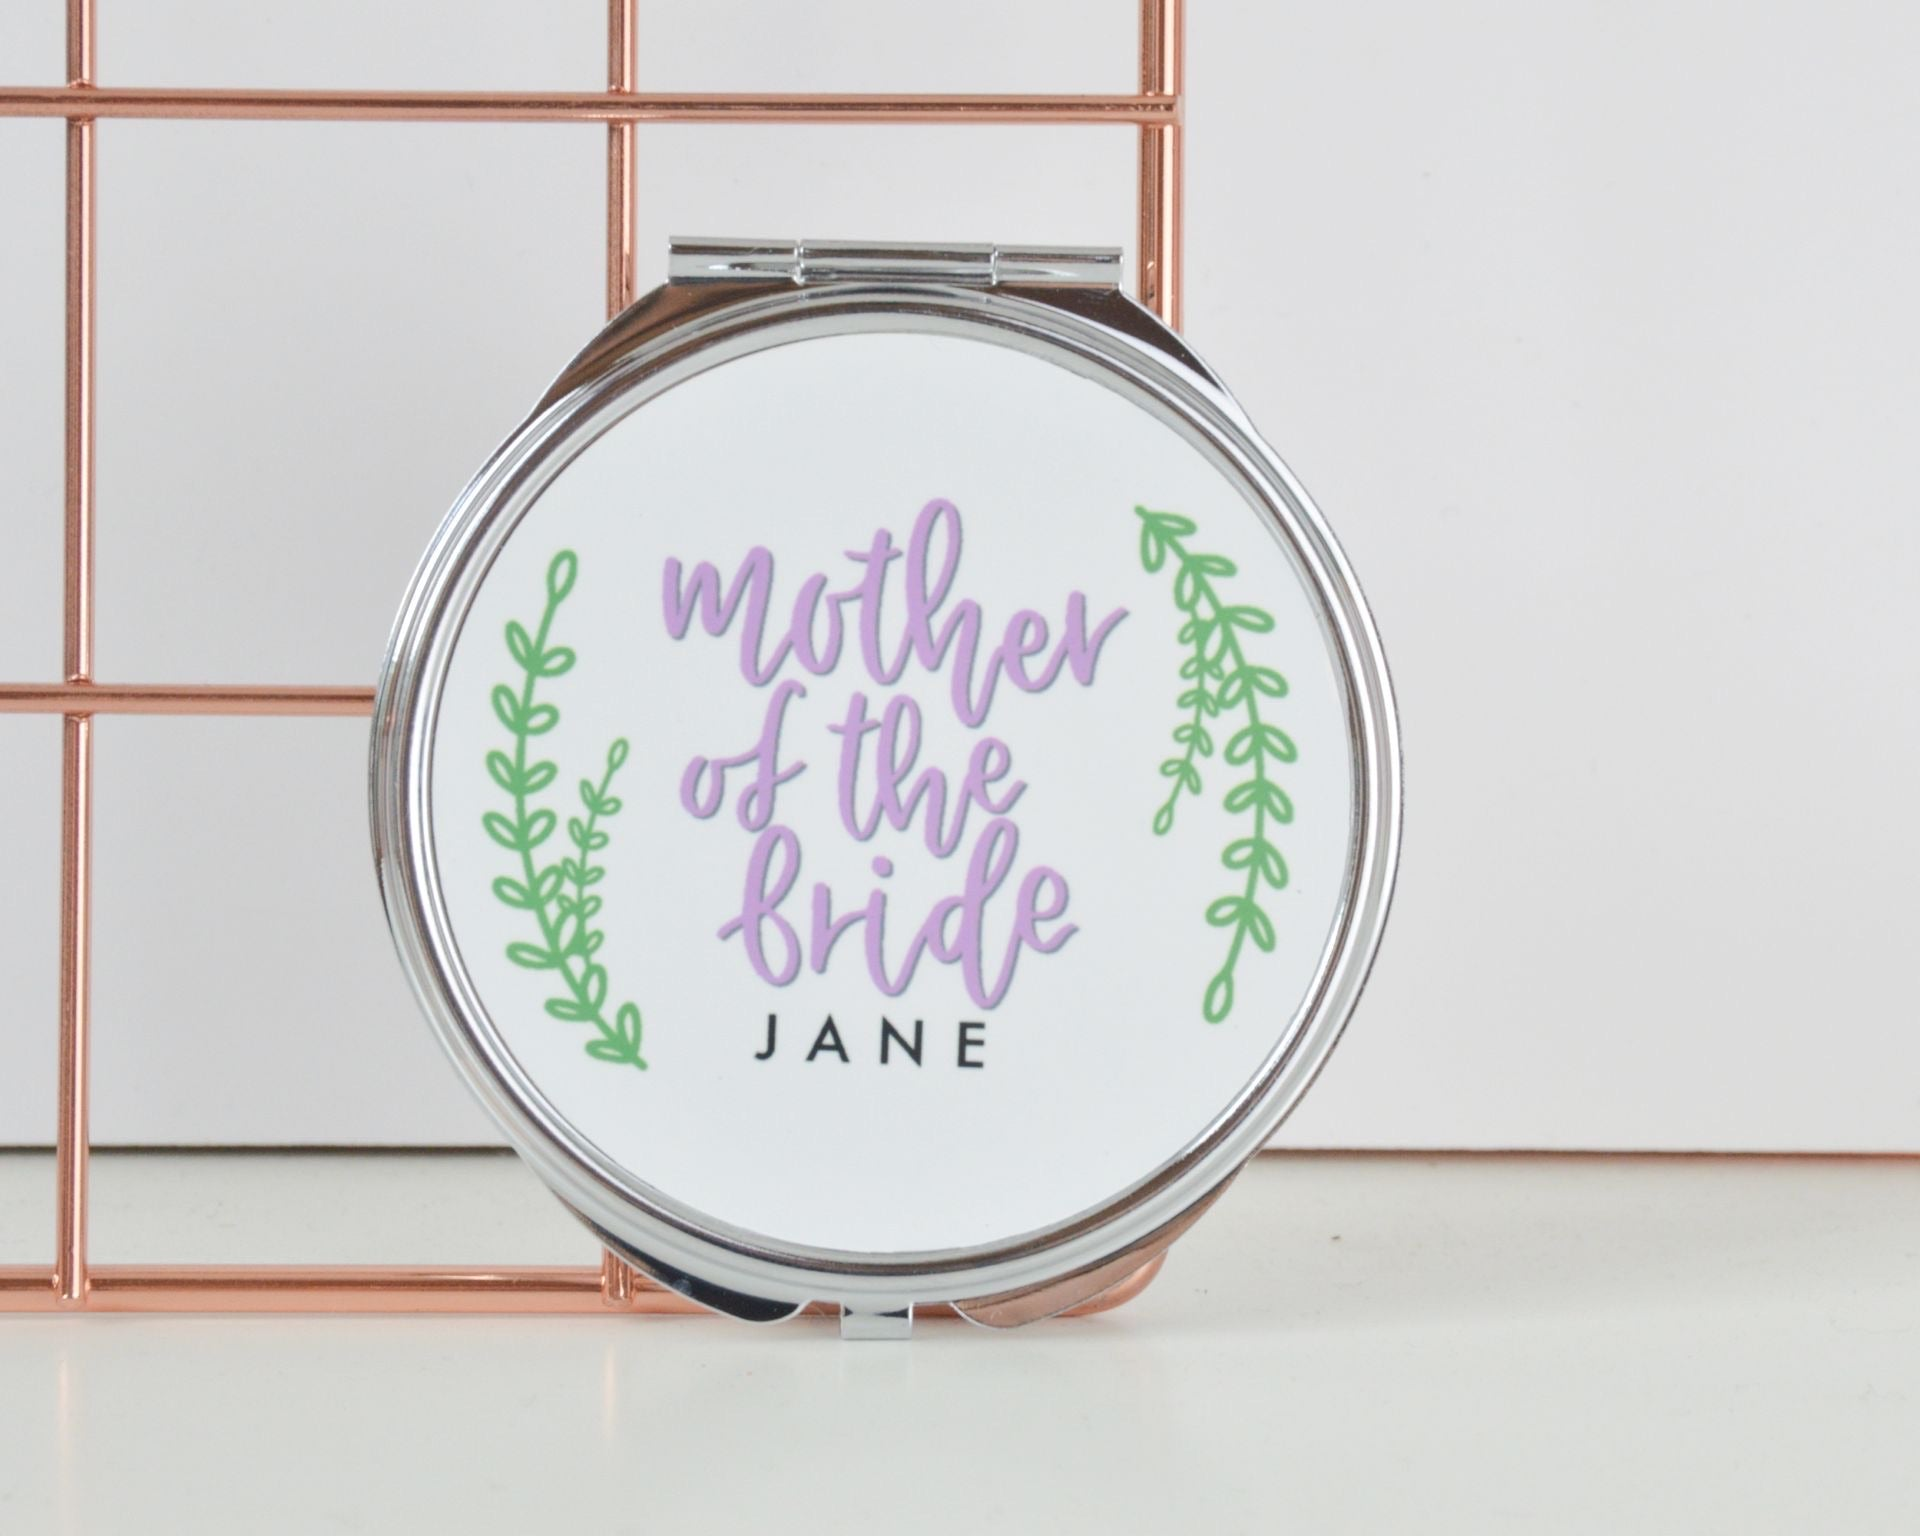 Personalised Mother of the Bride or Groom Compact Mirror - You Make My Dreams